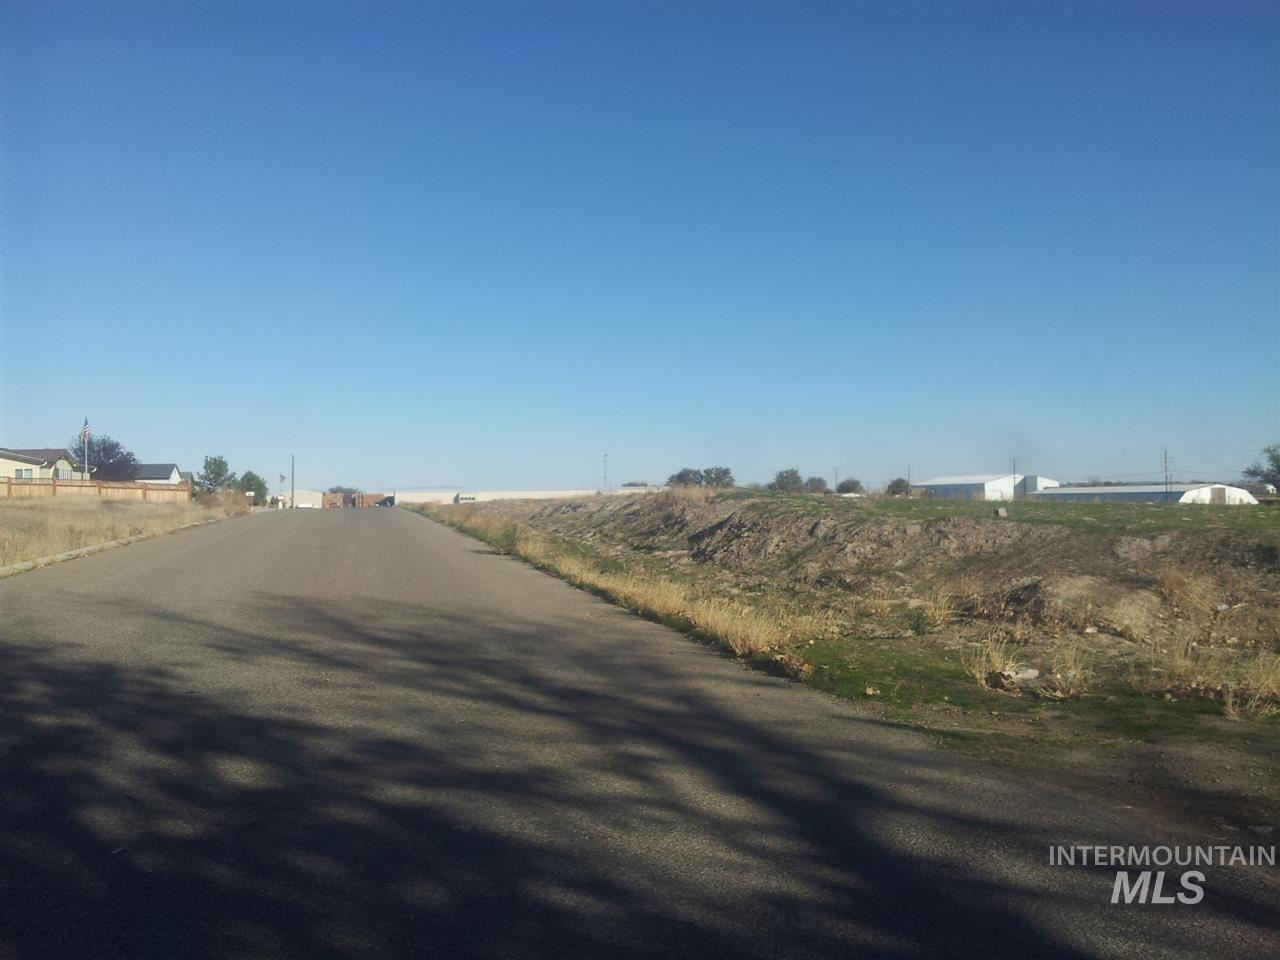 TBD N 5th Street, Nyssa, Oregon 97913, Land For Sale, Price $59,000, 98715827